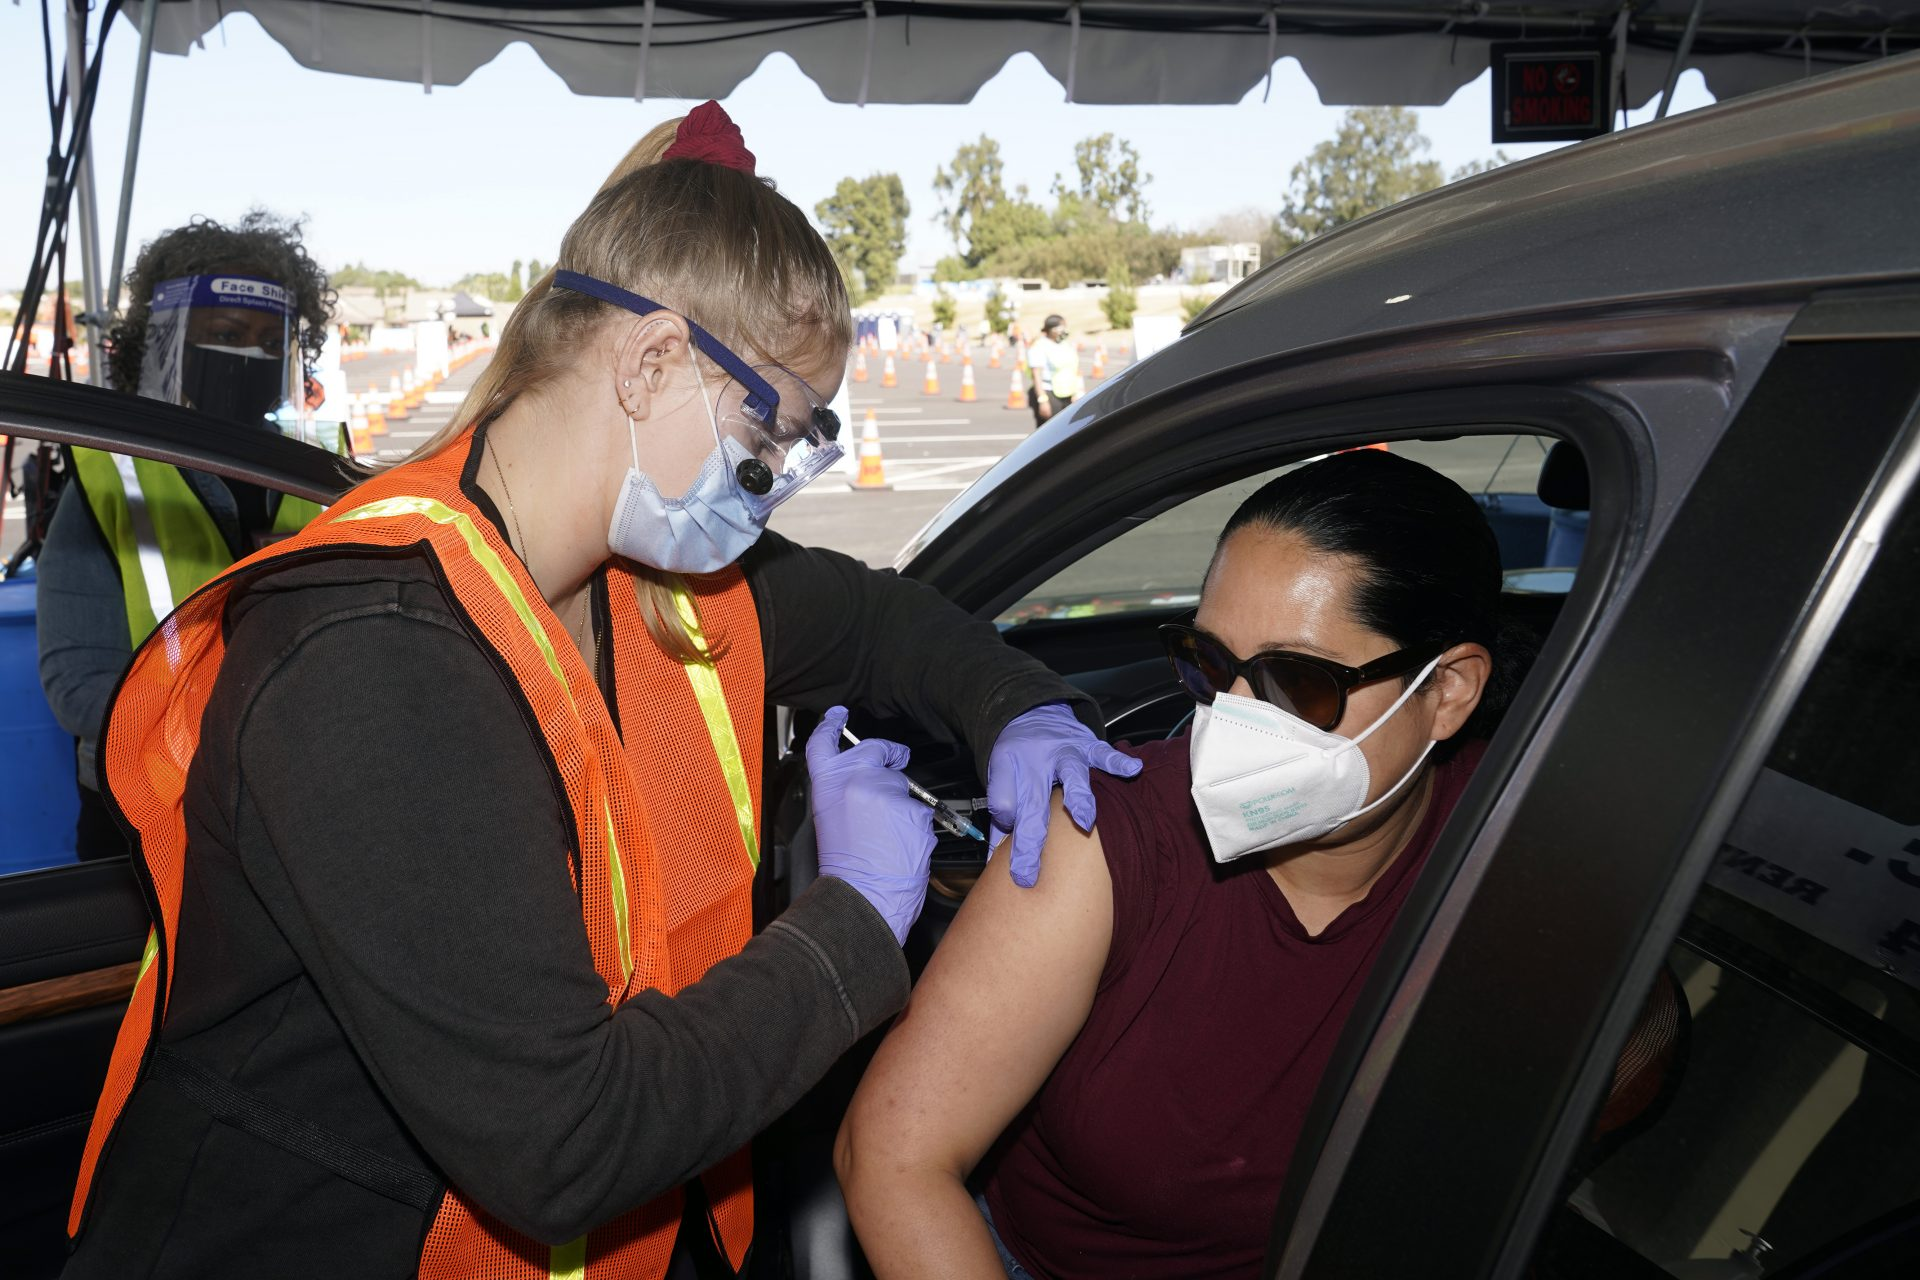 In this March 2, 2021, file photo, Vanessa Guerra, at right, a special education teacher at Grant Elementary School in Hollywood, receives a shot of the Moderna COVID-19 vaccine from nurse Kelly Mendoza at a site for employees of the Los Angeles school district in the parking lot of SOFI Stadium in Inglewood, Calif.